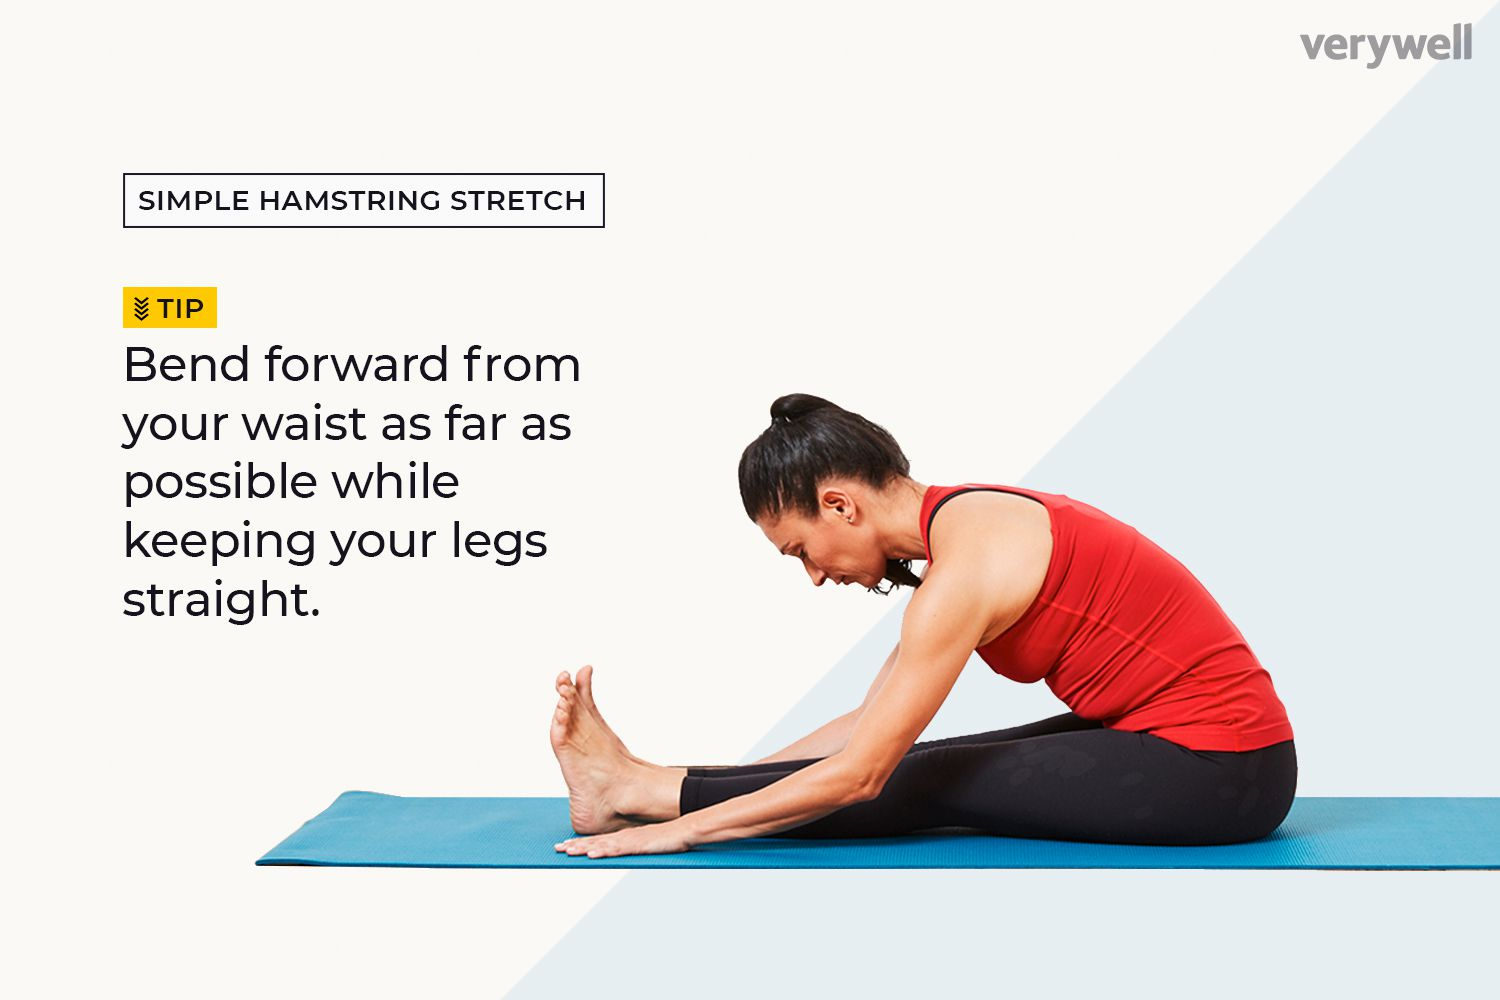 5 Simple Stretches For Tight Hamstrings To Try At Home